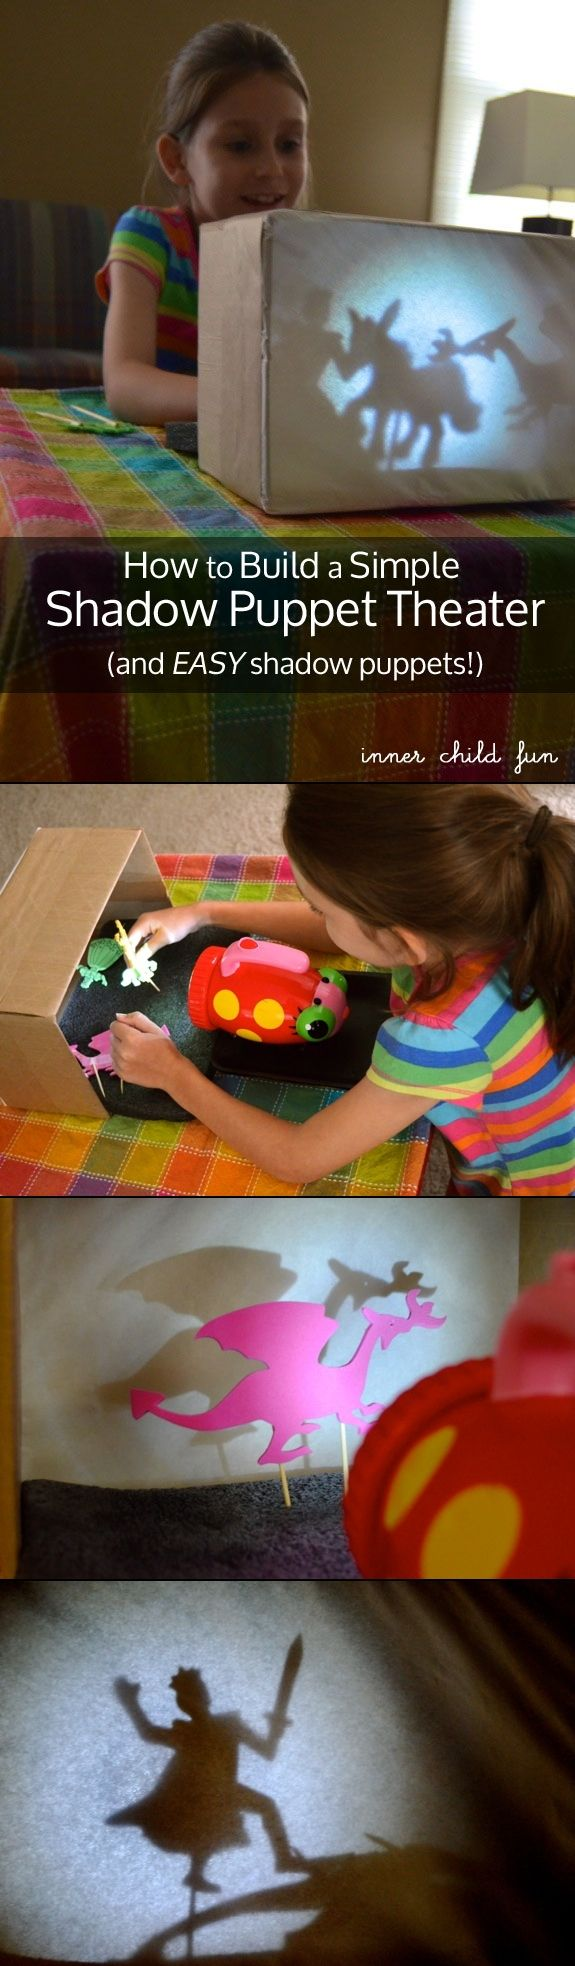 How to Build a Simple Shadow Puppet Theater (with simple foam stickers) #kids #play                                                                                                                                                                                 Mais